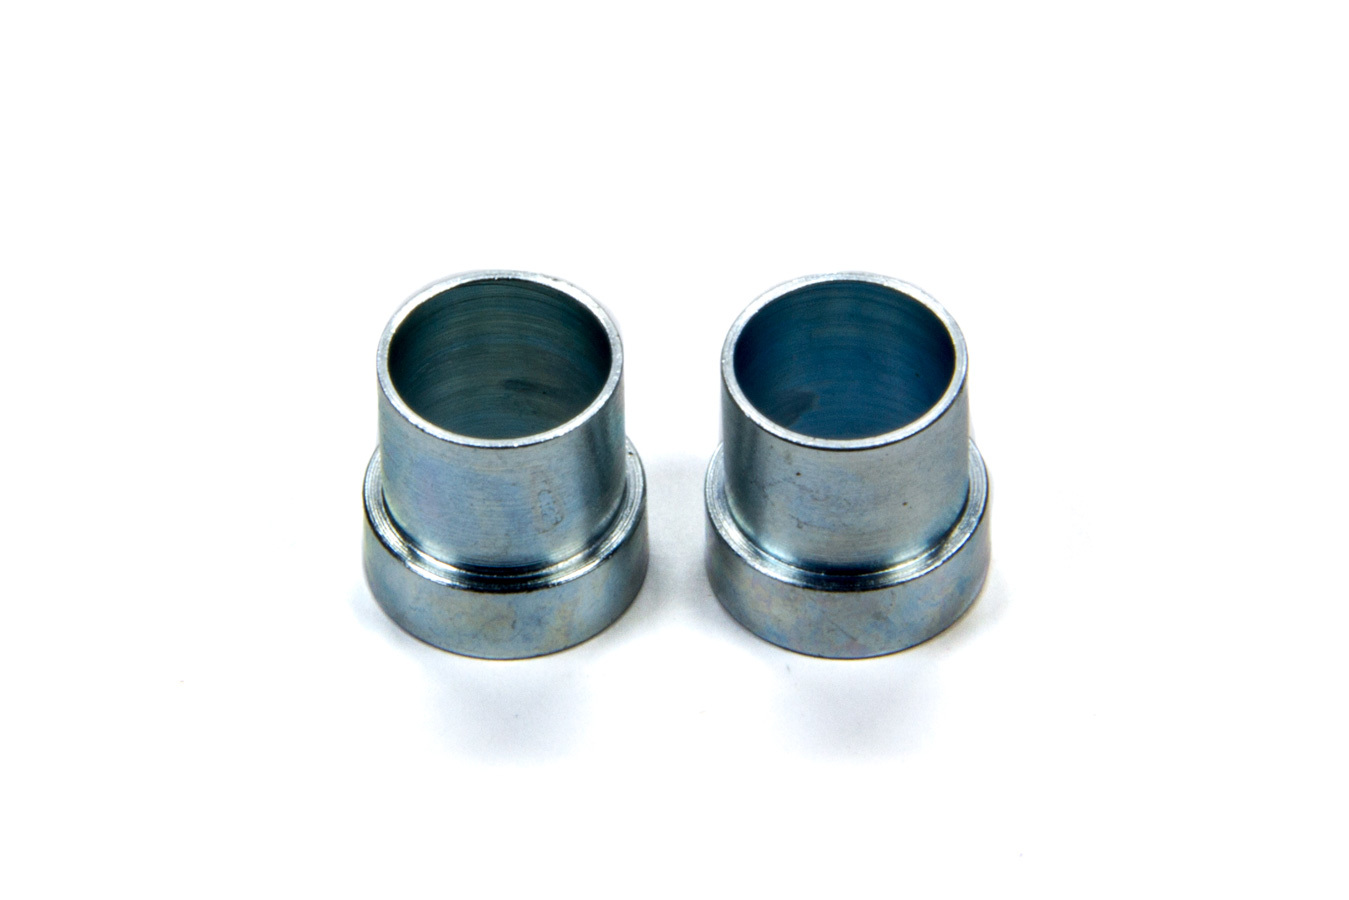 Aeroquip FCM3680 Fitting, Tube Sleeve, 6 AN, 3/8 in Tube, Steel, Nickel Plated, Pair